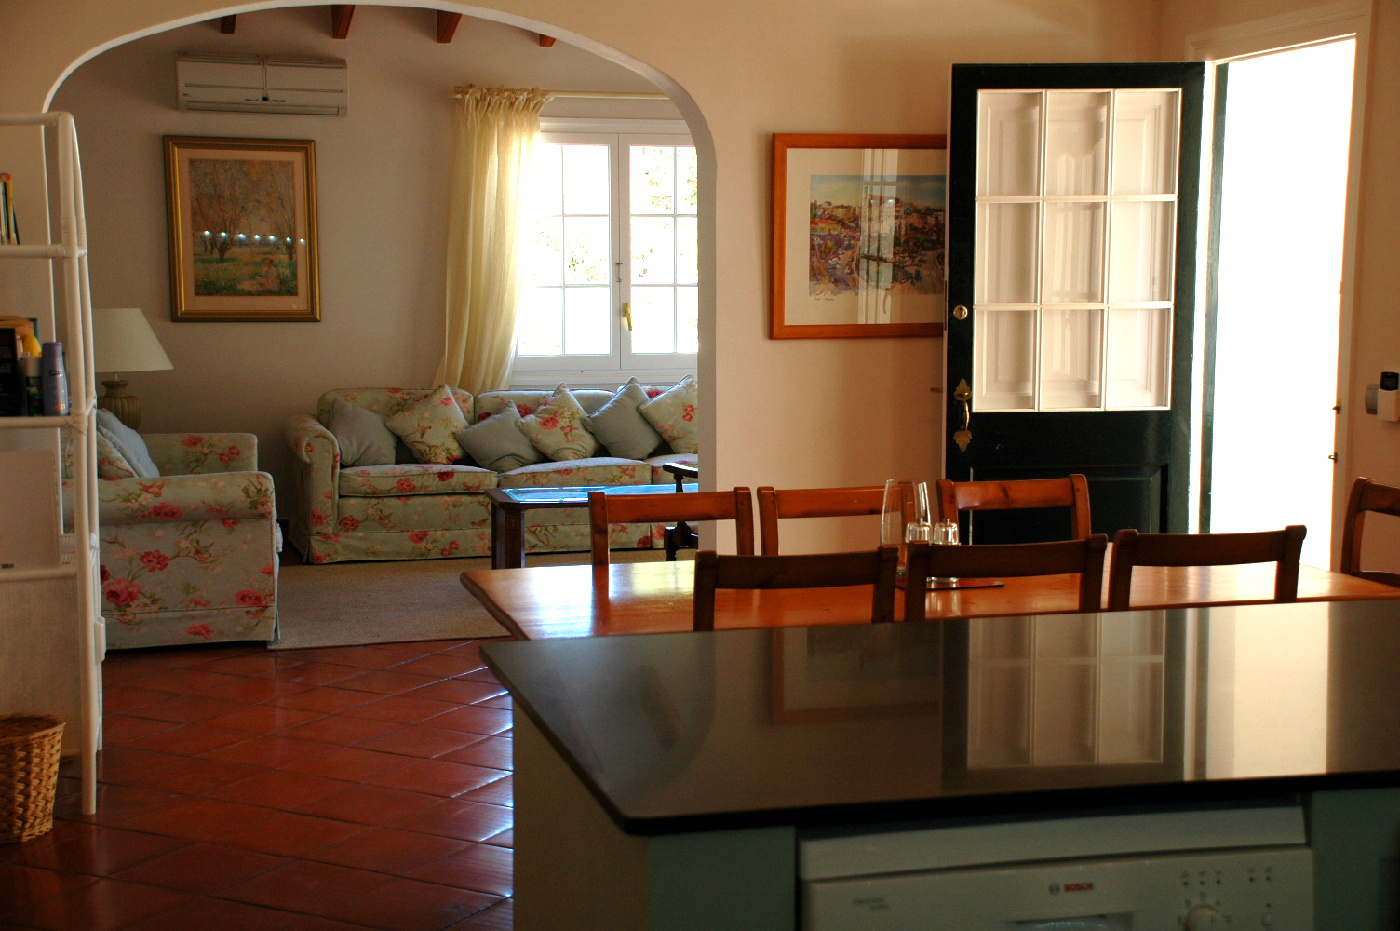 menorca-kitchen-dining-room